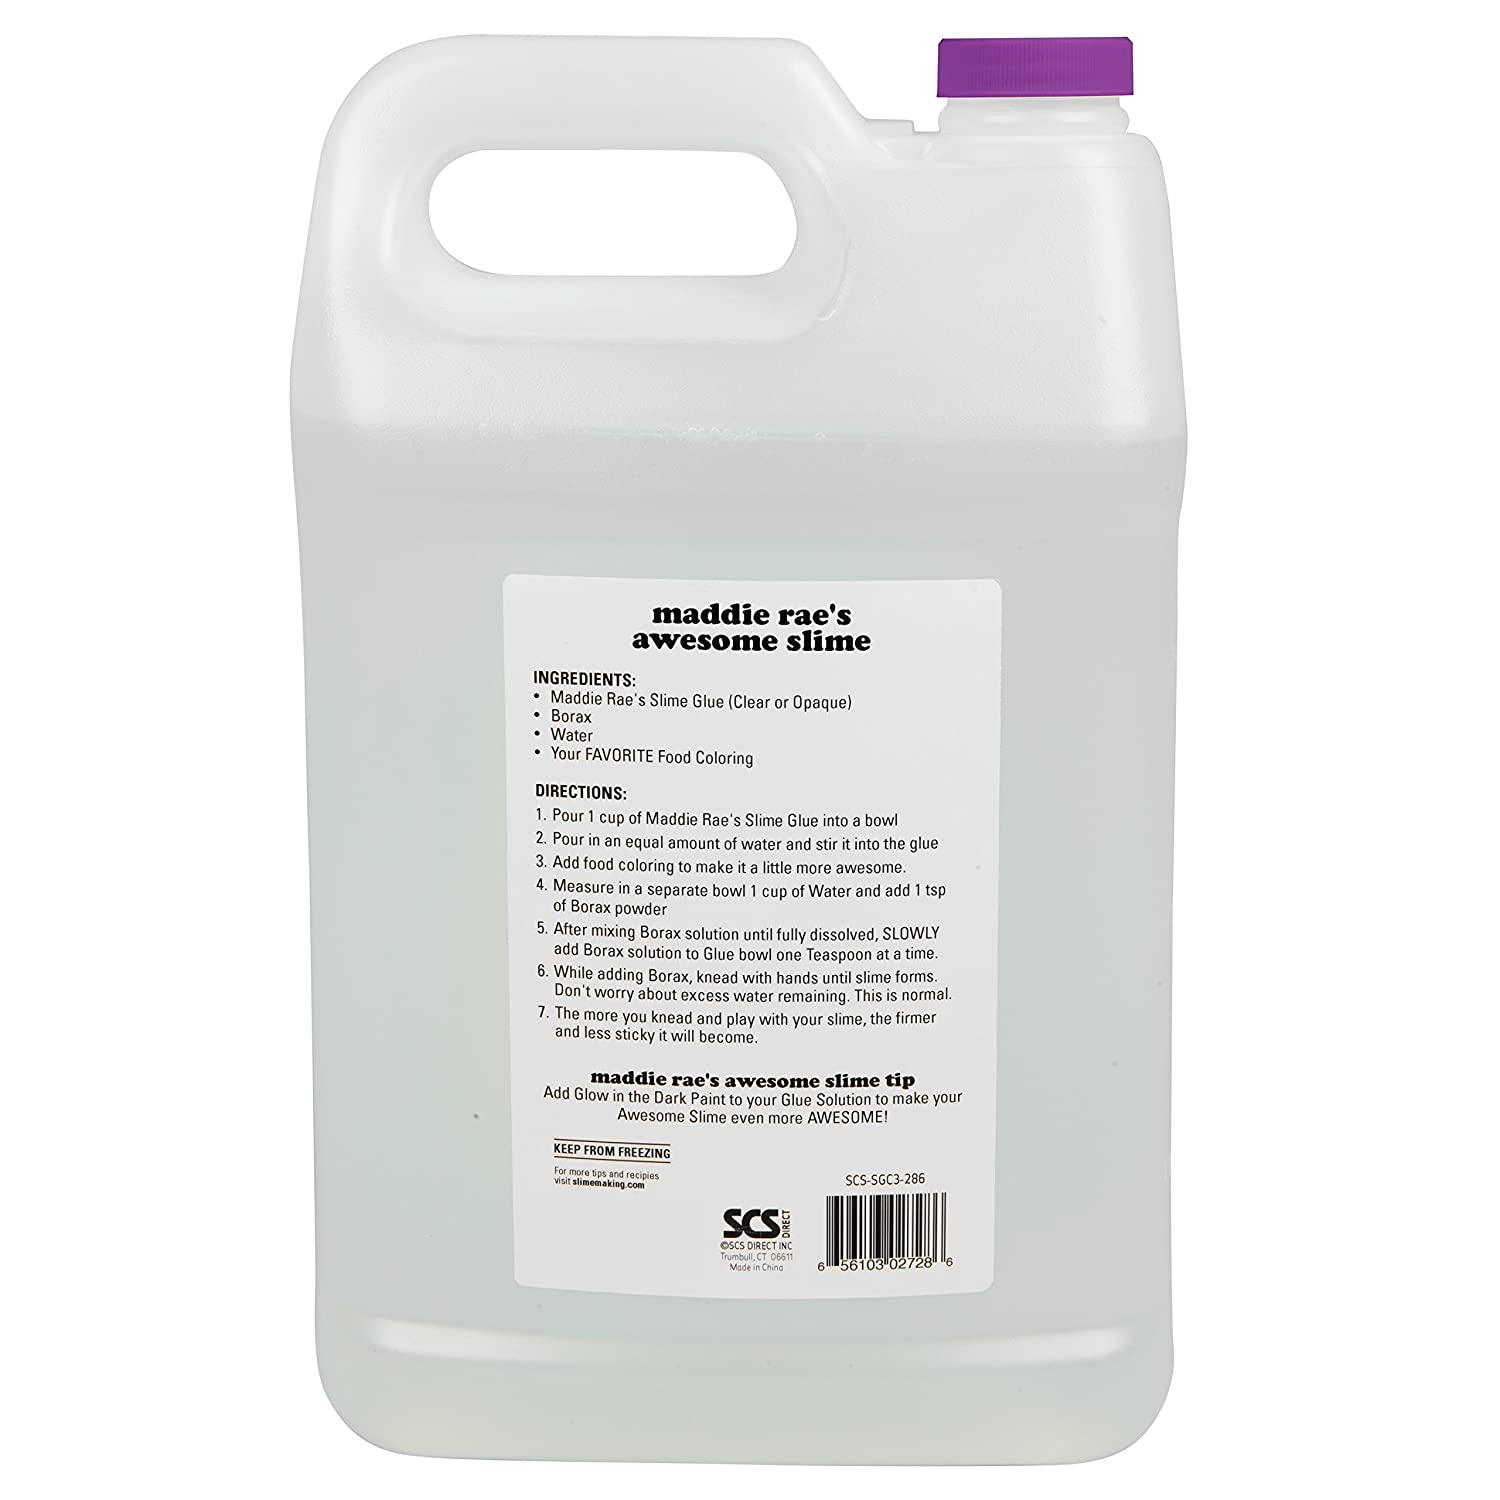 Maddie Rae's Clear Slime Glue - 1 Gallon - Non Toxic - The Clearest Slime  Formula of Any Glue Brand - Perfect Slime Making Crafts (Clear Gallon)